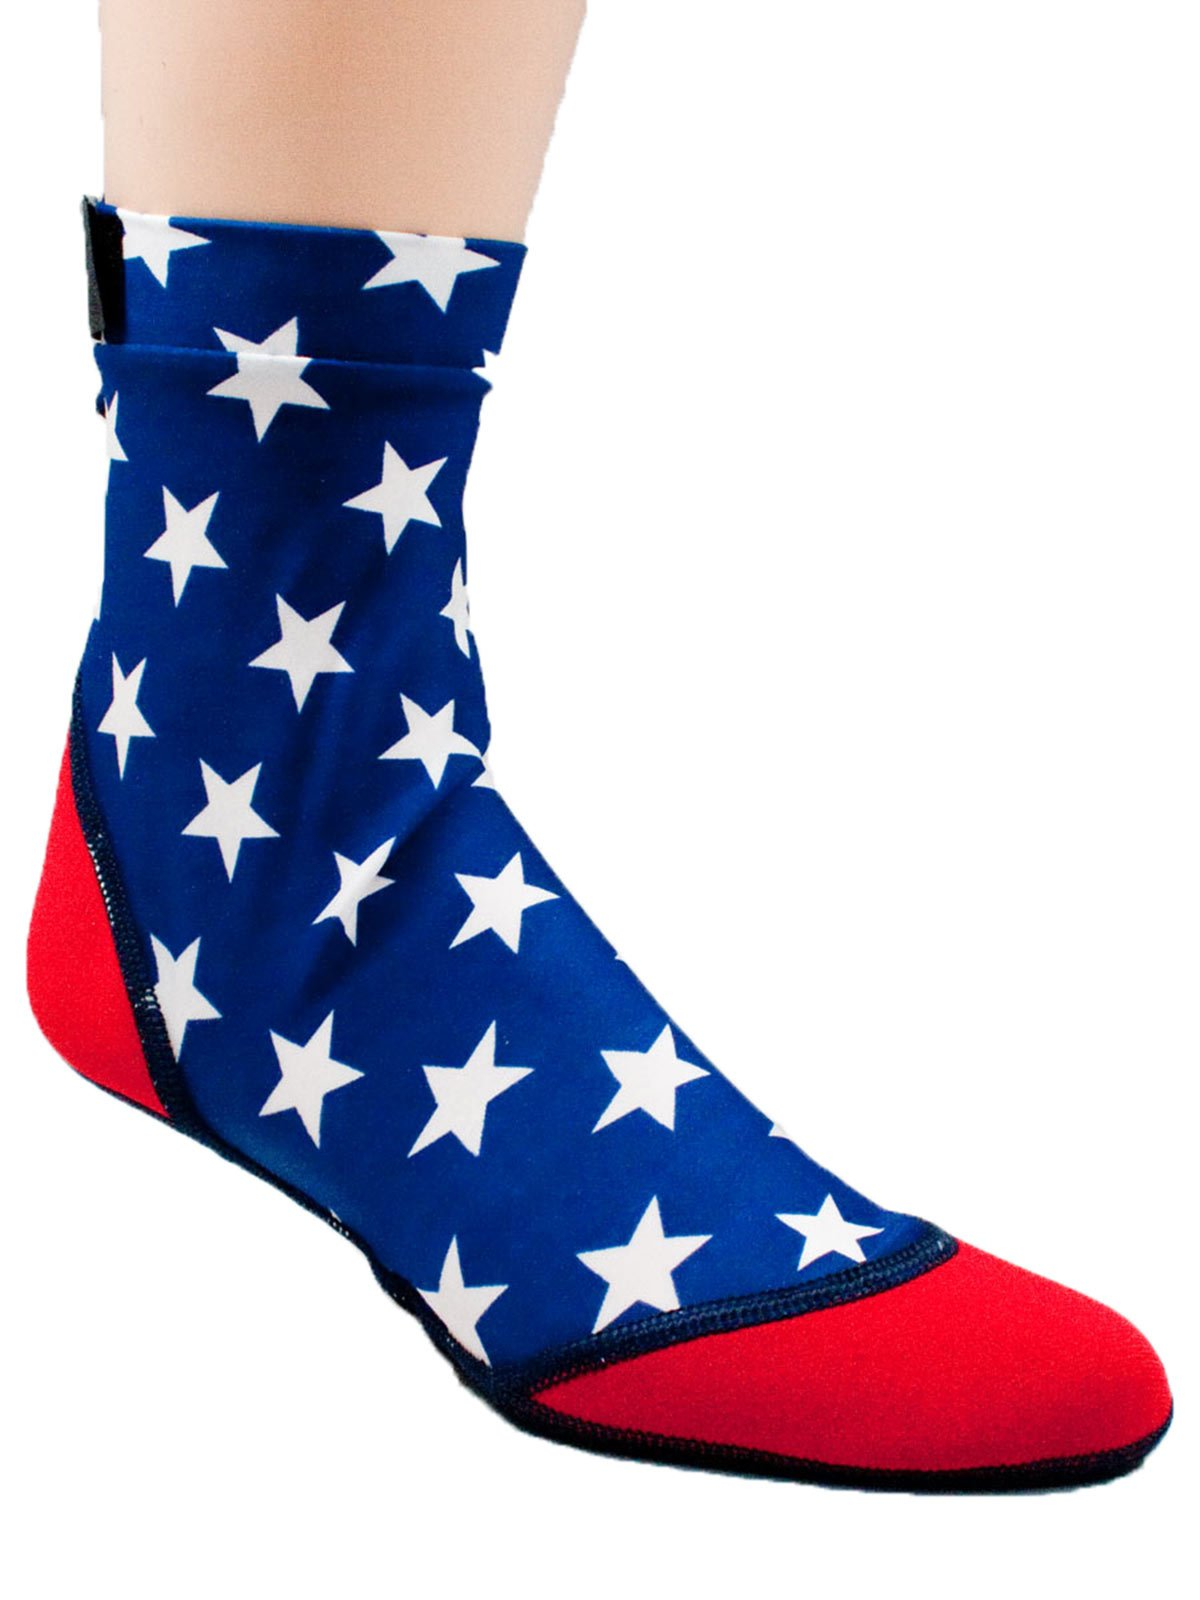 Vincere Sand Socks for Snorkeling, Beach Soccer, Sand Volleyball XXS Patriotic (Made in the USA)